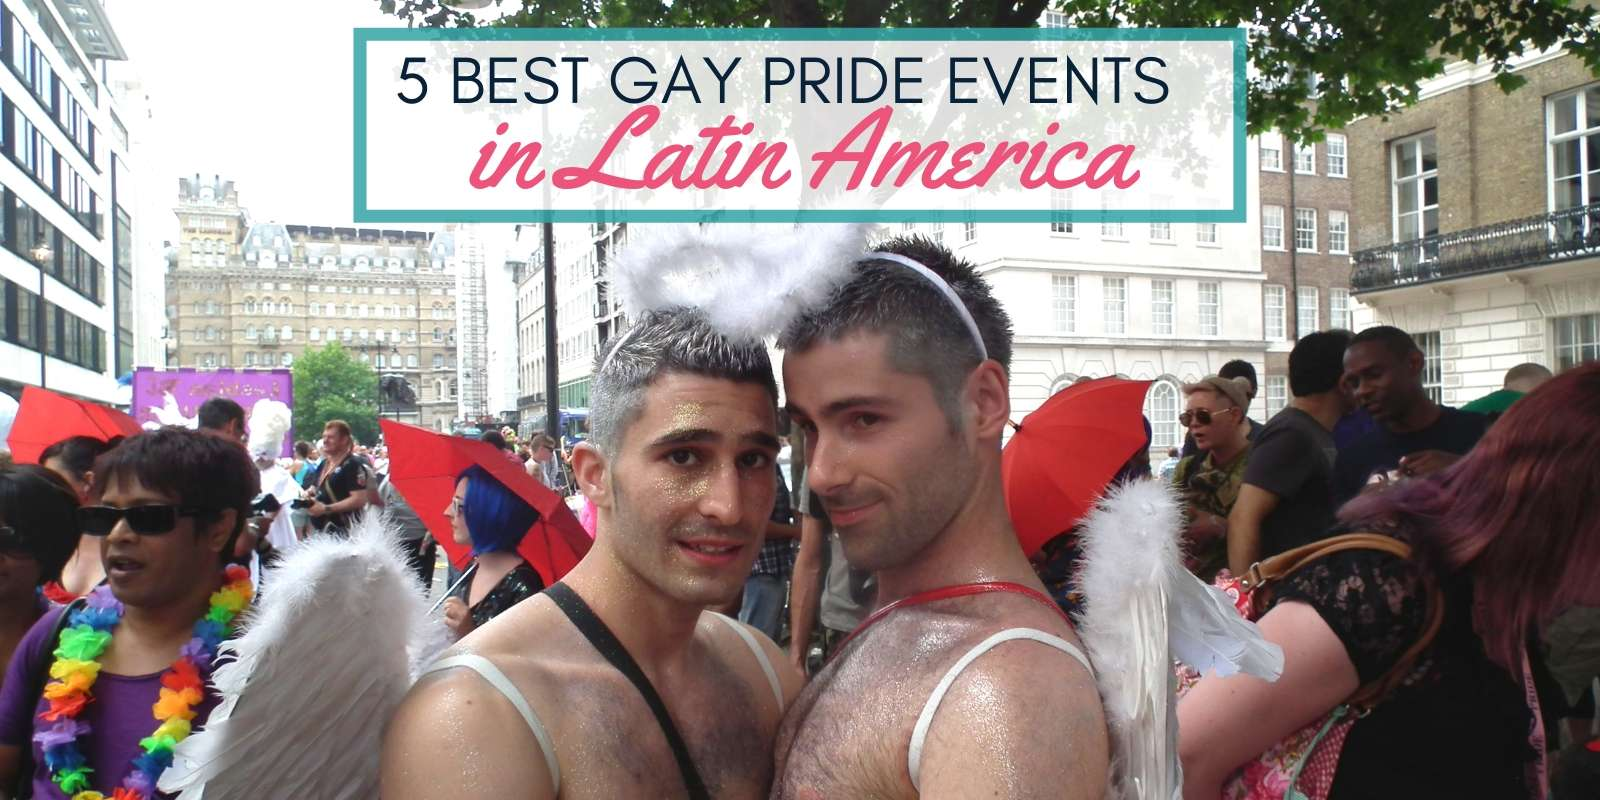 5 Best Gay Pride Events in Latin America